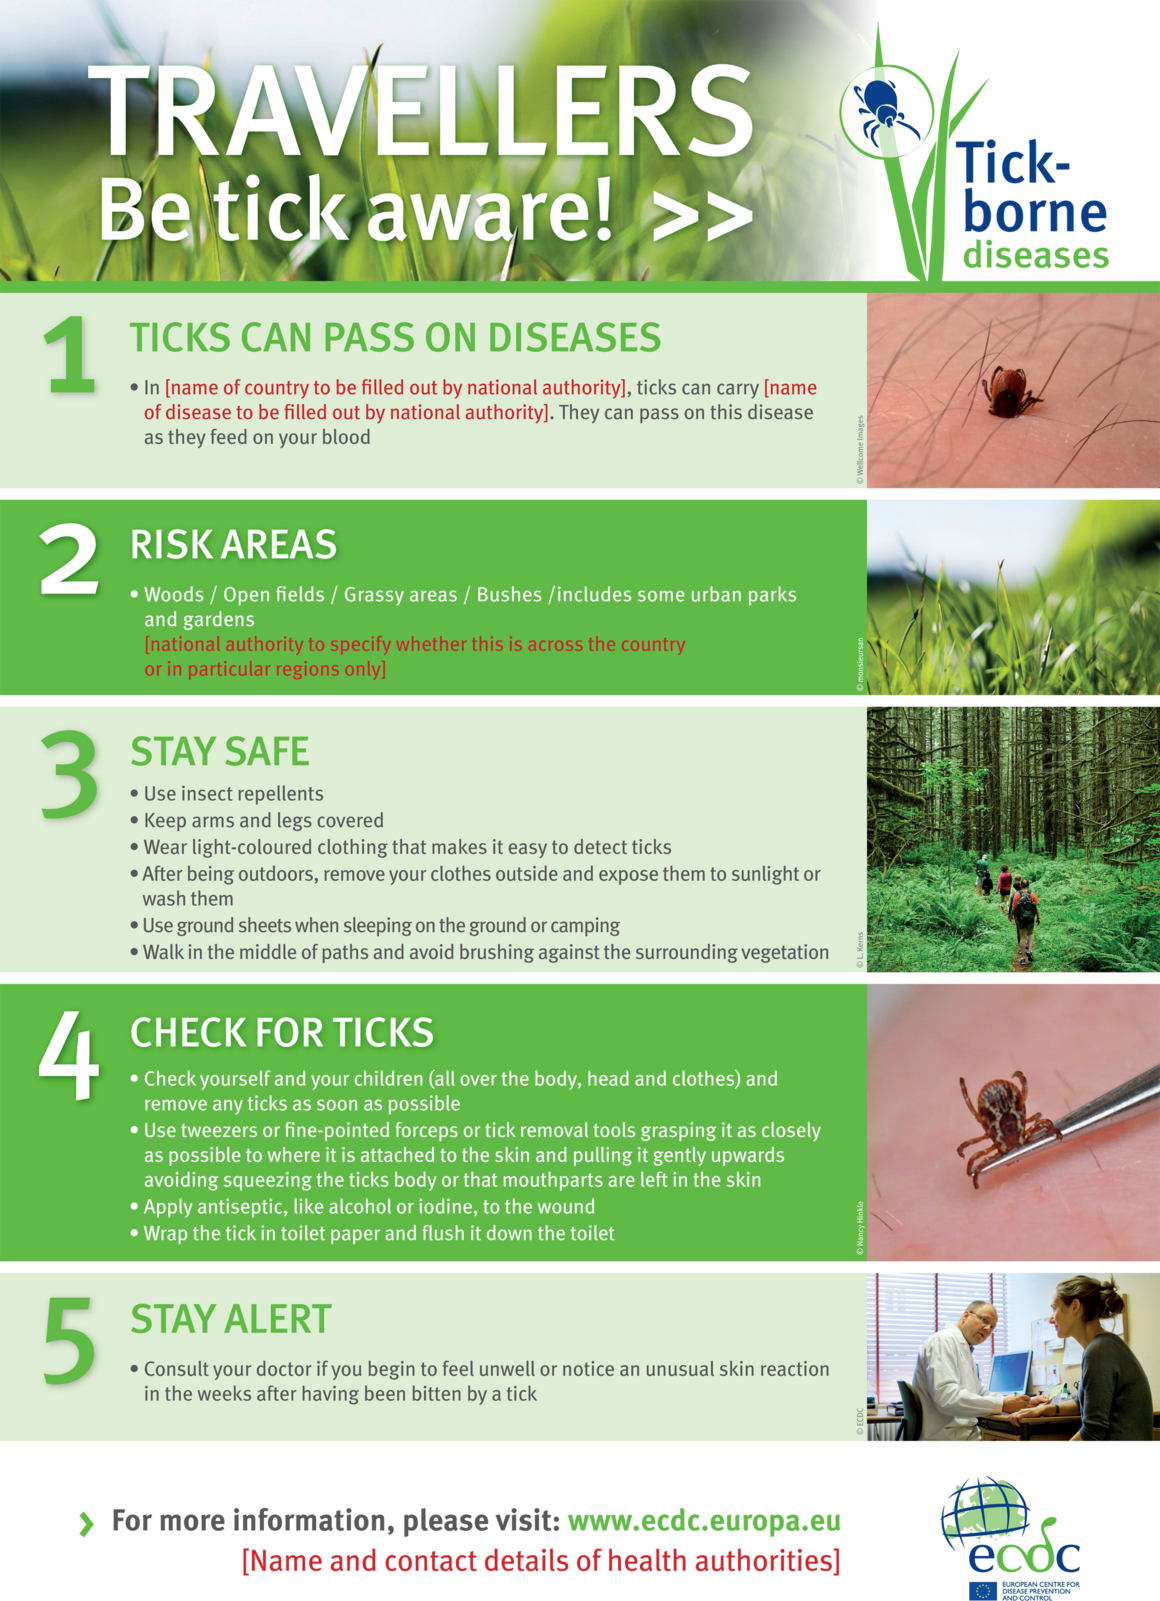 Poster for travellers on ticks and tickborne disease